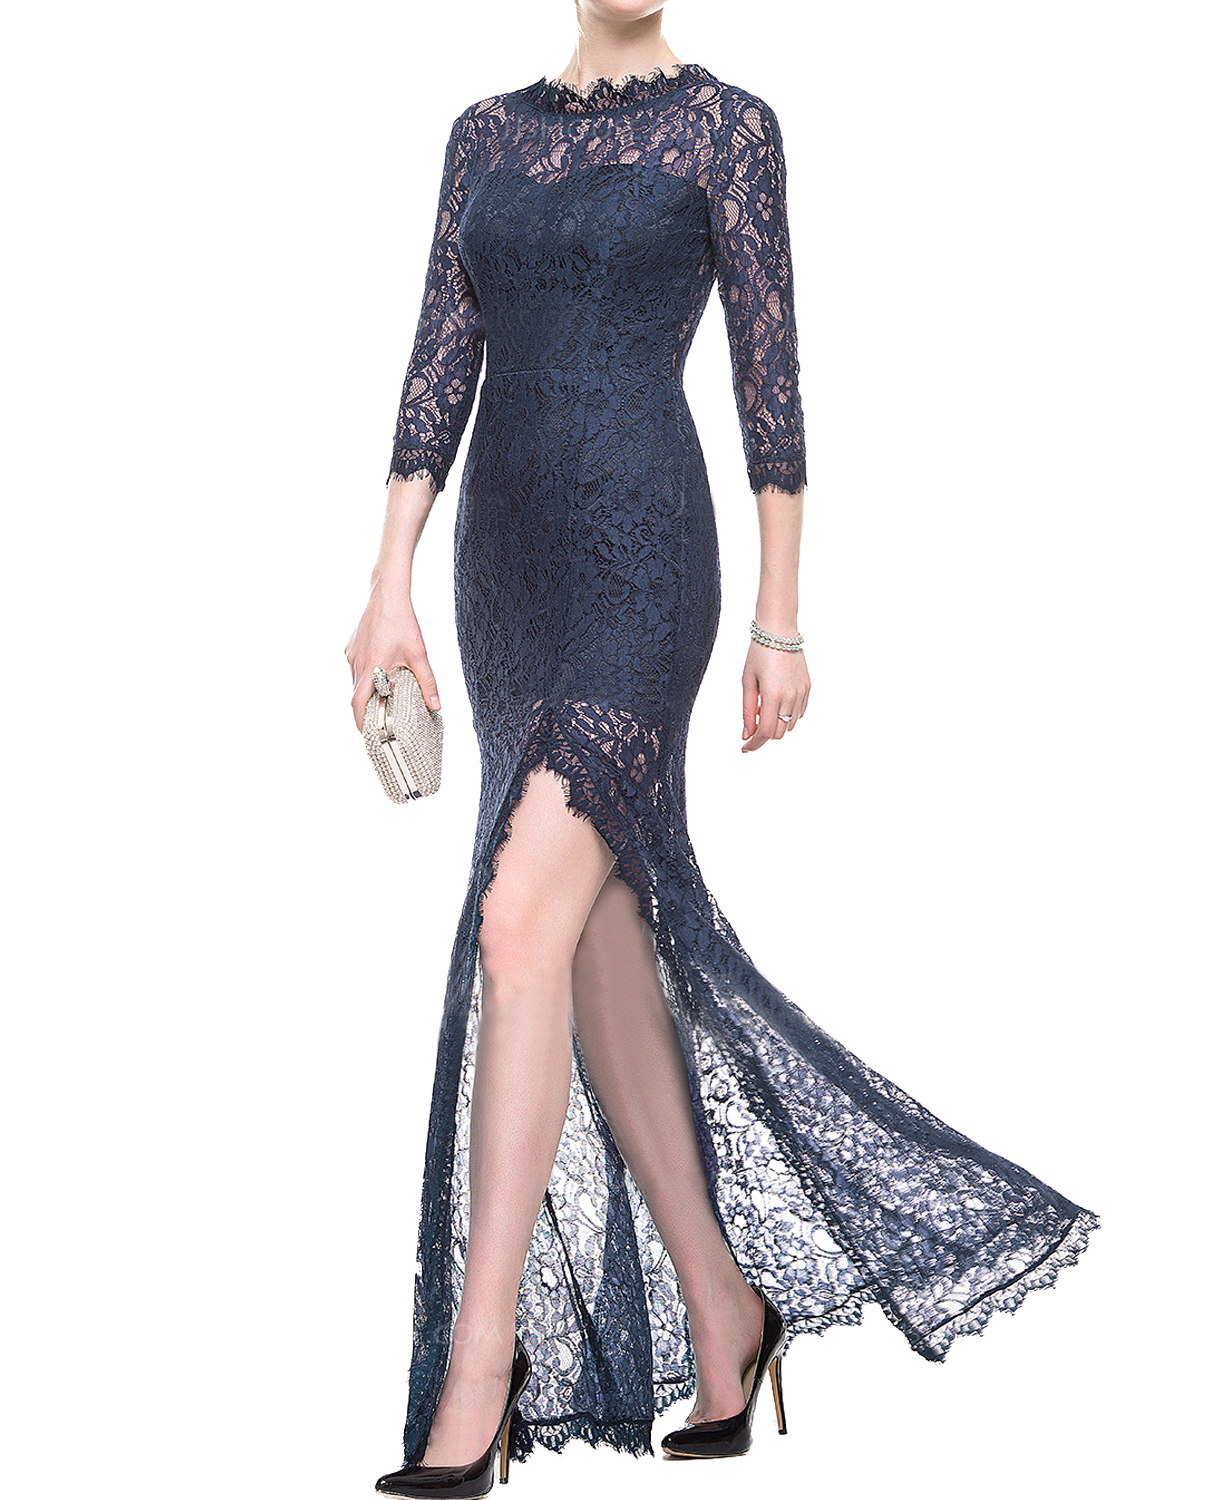 Navy Blue Sheath Lace Evening Dress,Sexy Lace Navy Blue Sheath Long Prom Dresses